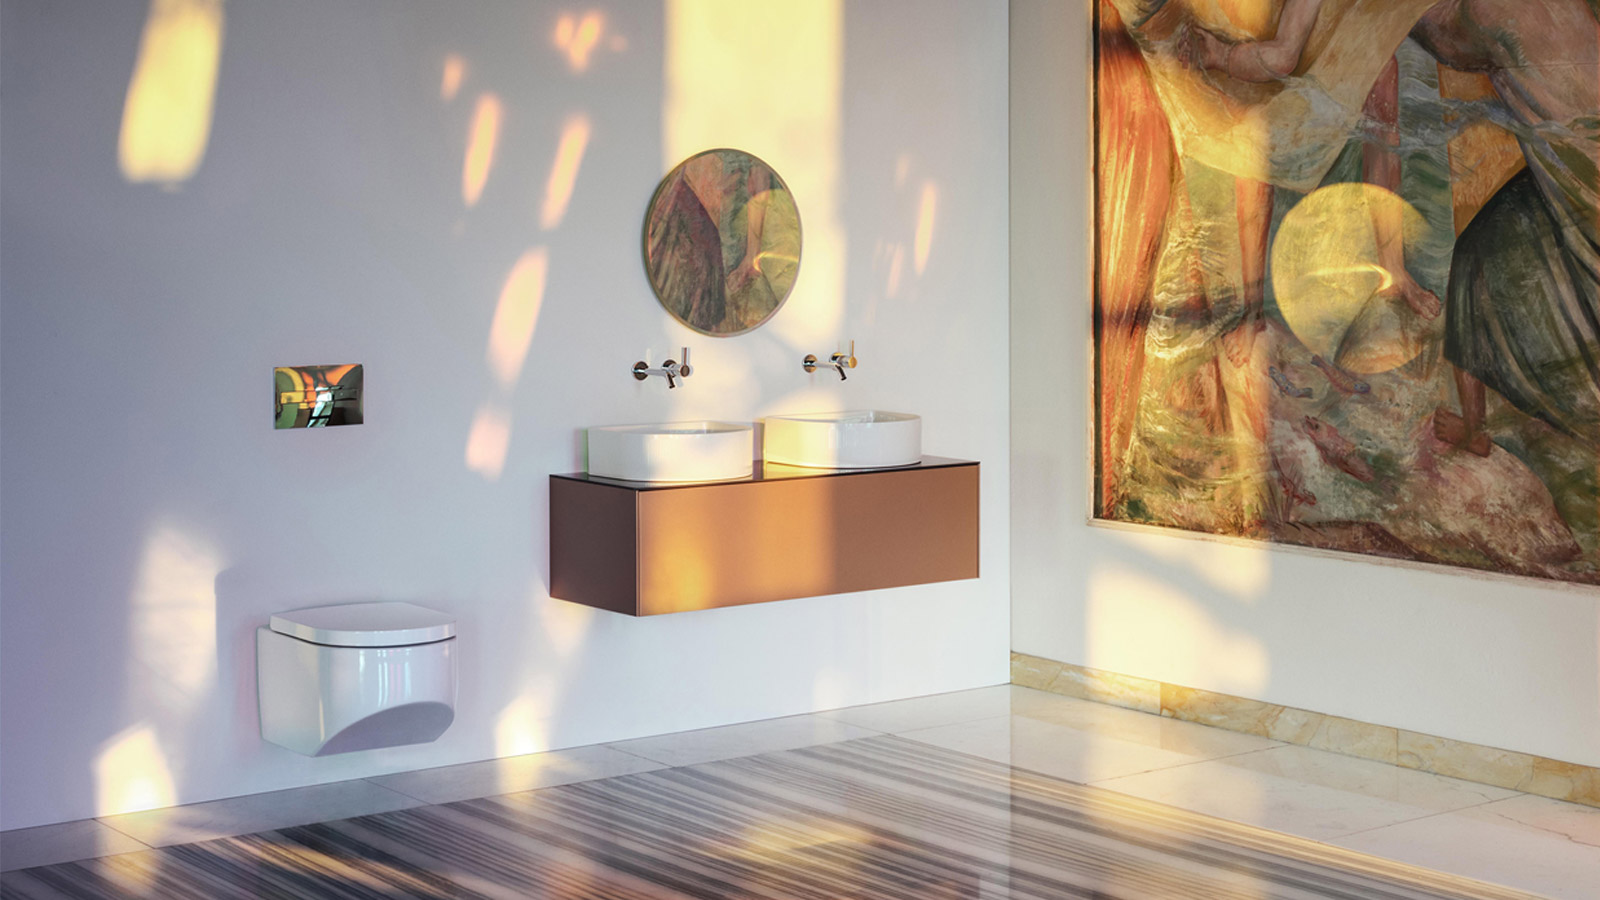 Laufen bathroom with natural daylight